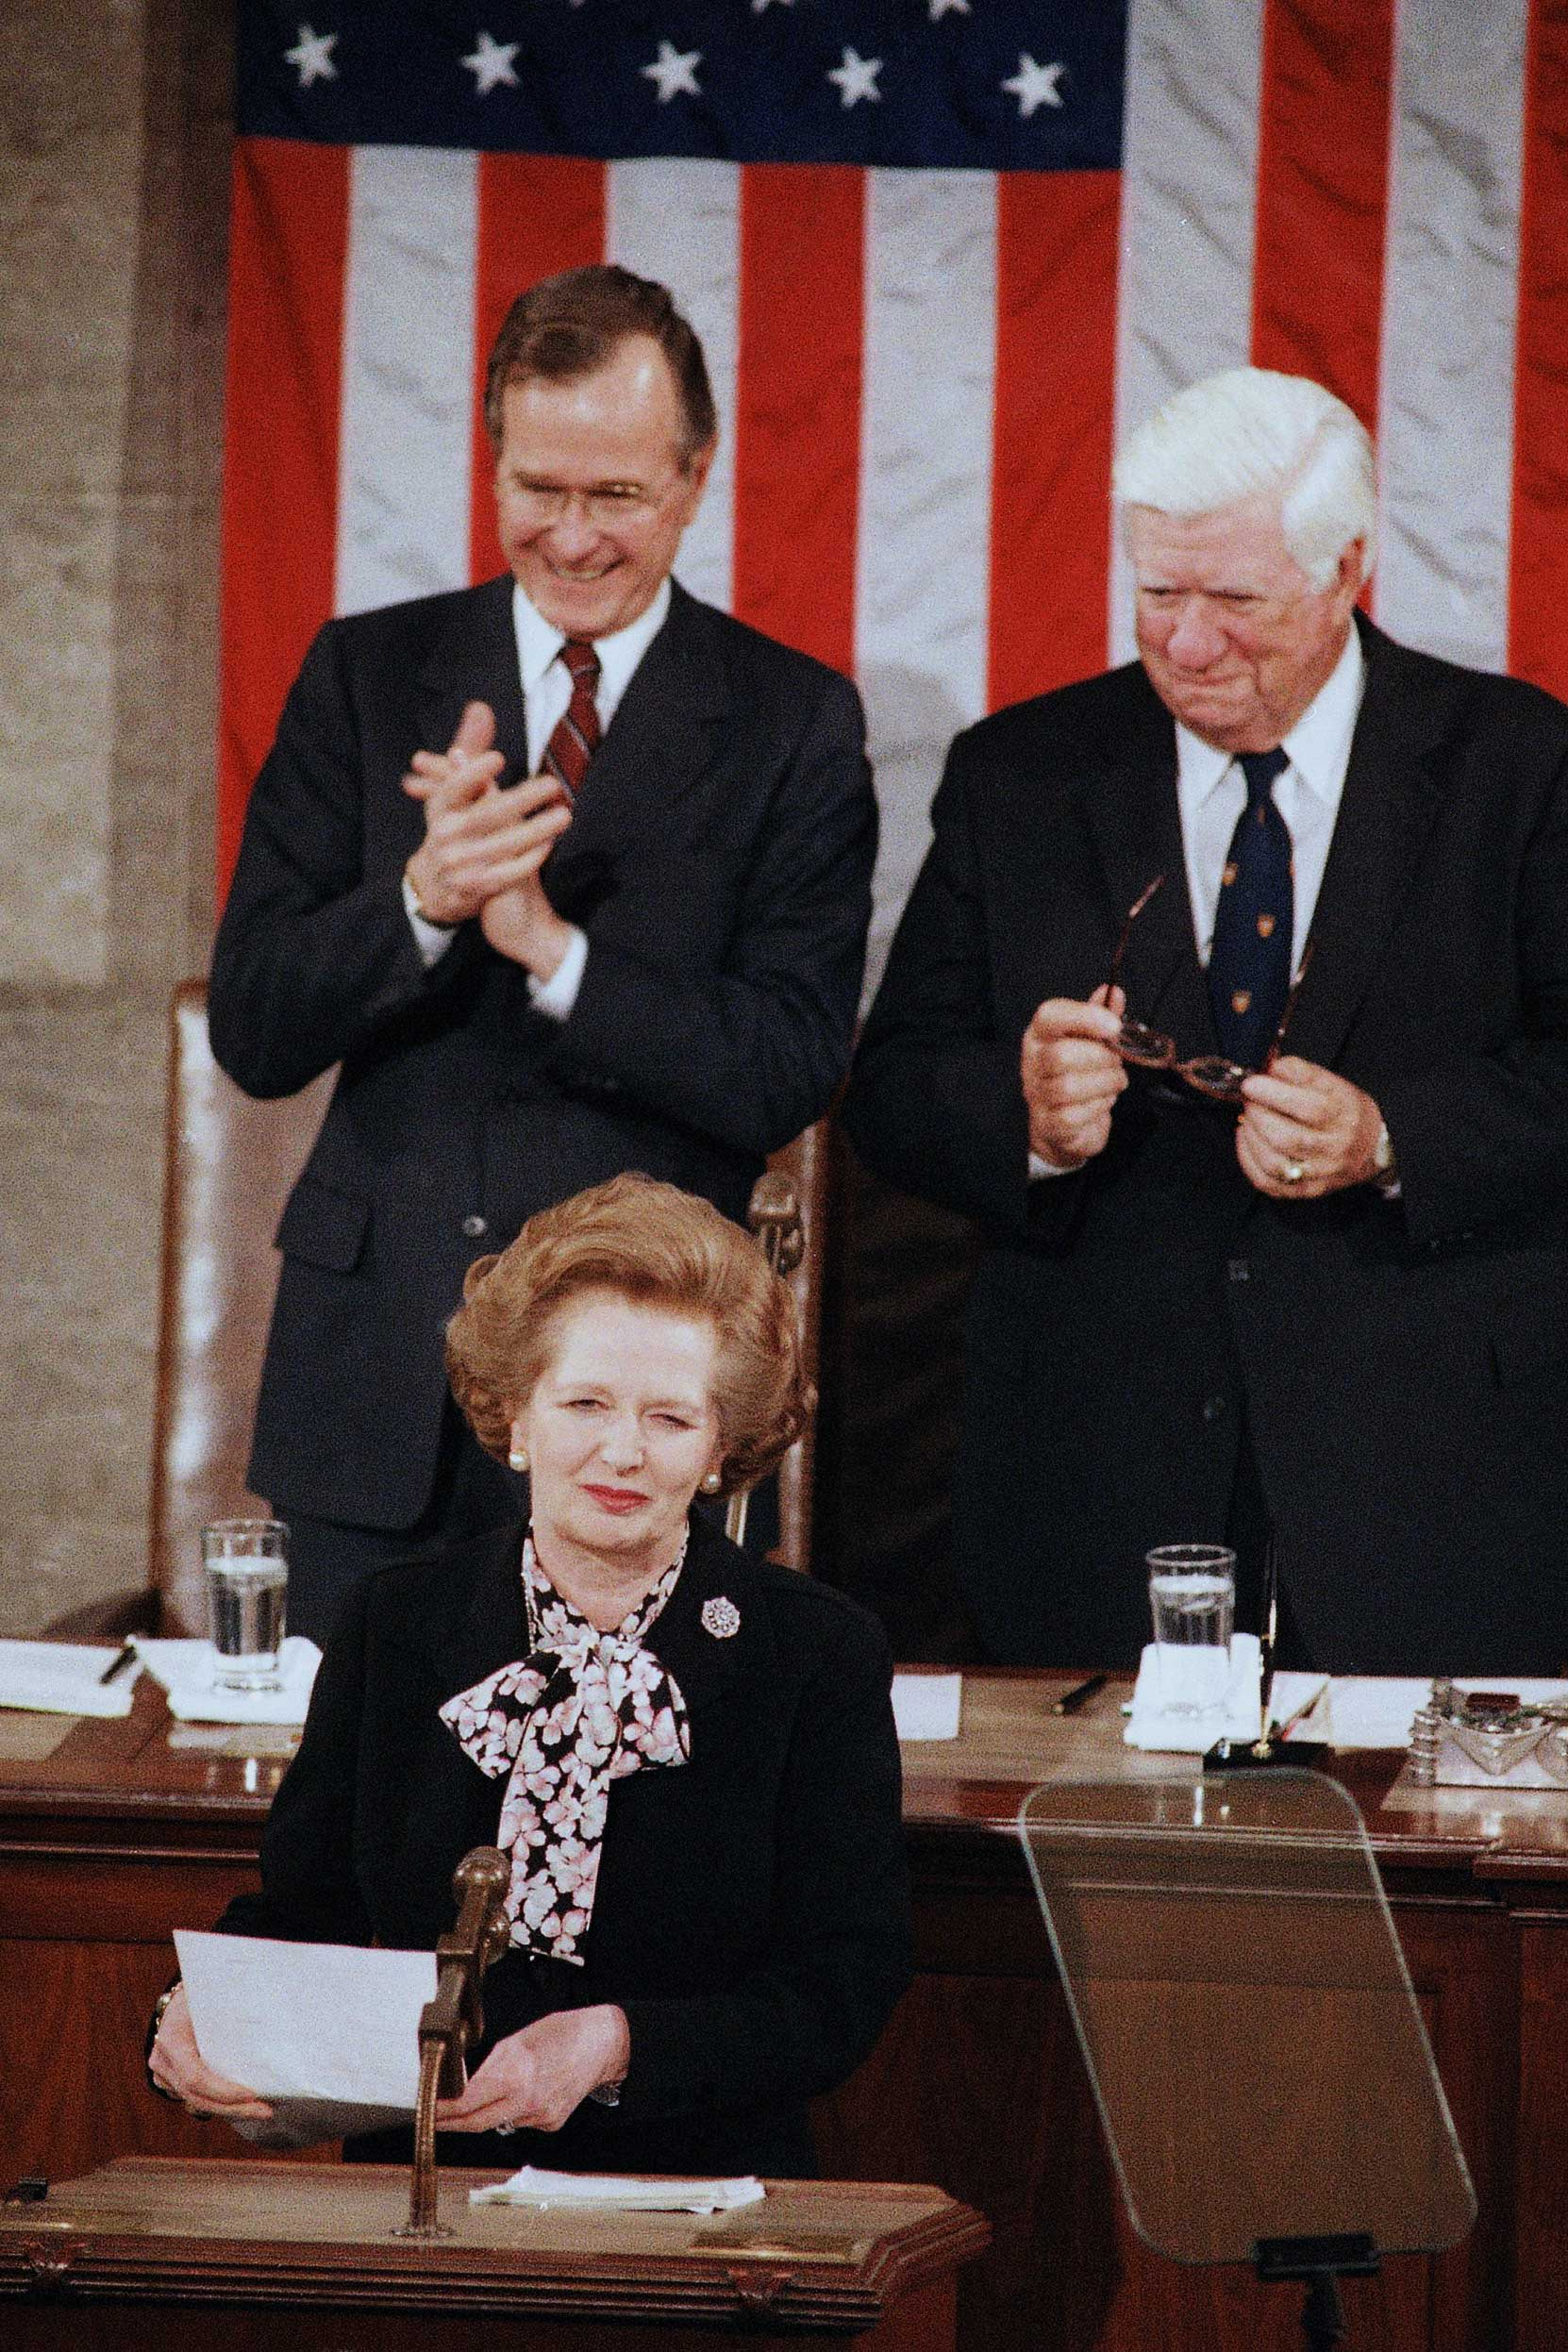 <b>Margaret Thatcher</b>, British Prime Minister, addressed Congress on Feb. 20, 1985. She was the first female head of state to do so who was not a monarch.